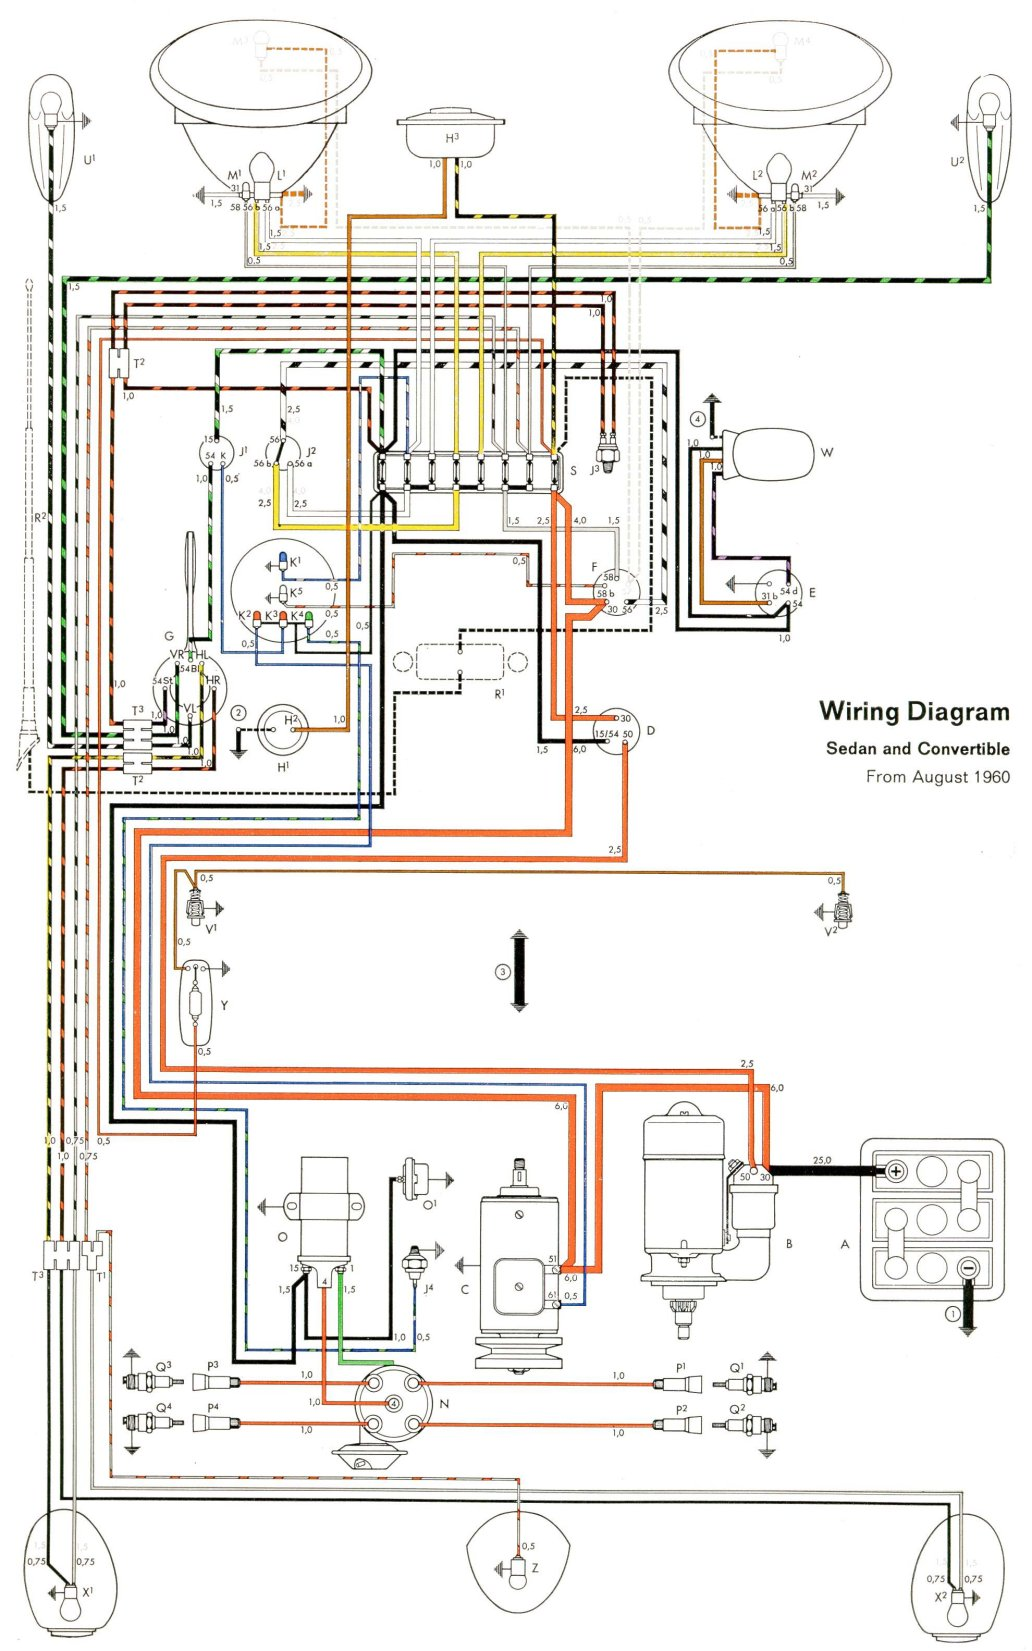 thesamba com type 1 wiring diagrams rh thesamba com VW Beetle Generator Wiring Diagram VW Beetle Generator Wiring Diagram